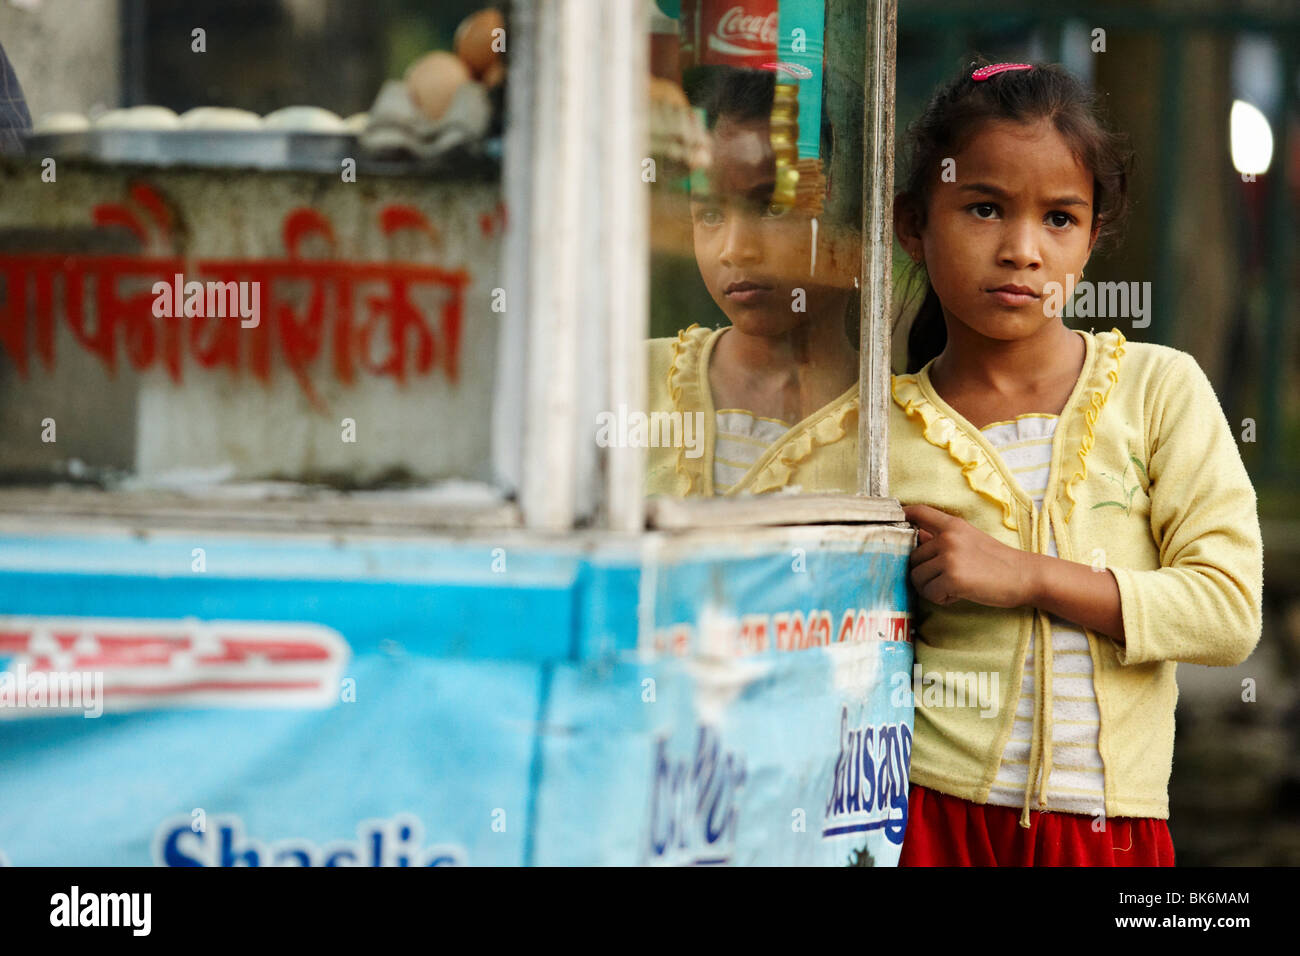 A girl stands by a stall selling snacks in Pokhara, Nepal on Monday October 26, 2009. - Stock Image